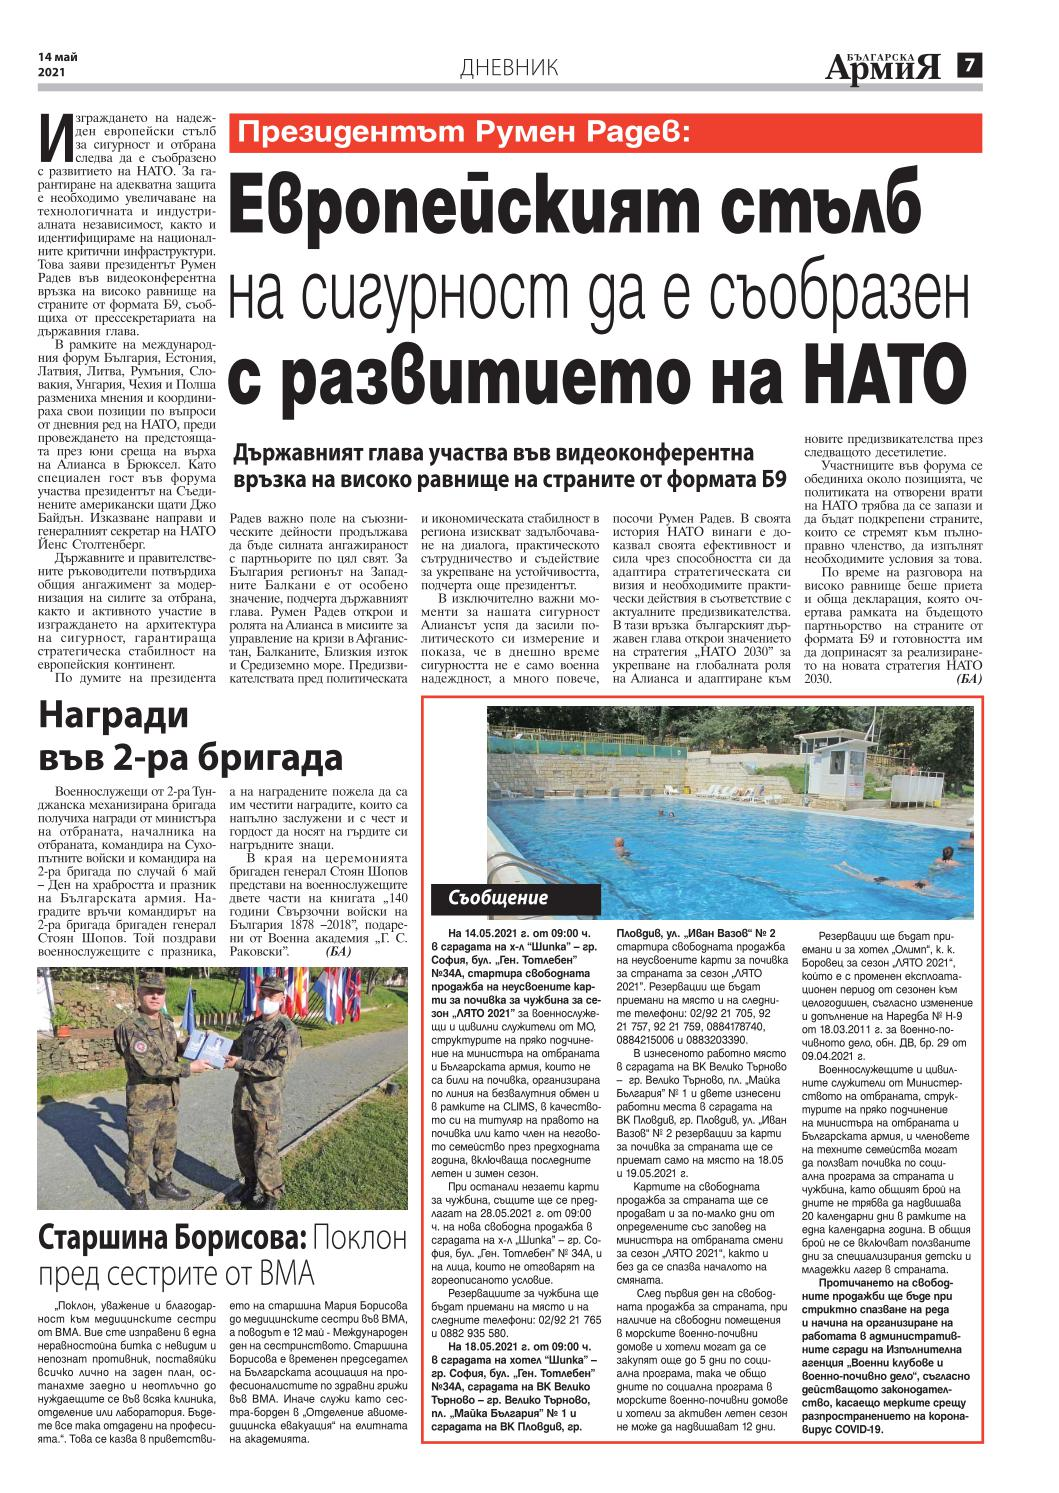 https://armymedia.bg/wp-content/uploads/2021/05/07.page1_-1.jpg